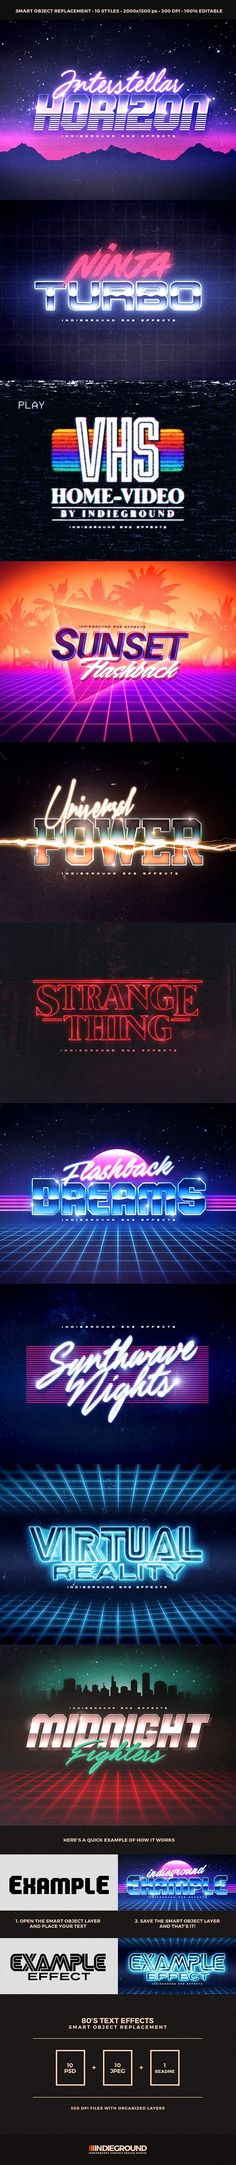 vaporwave font Retro Text Effects f - vaporwave Effects Photoshop, Text Effects, Photoshop Actions, Graphisches Design, Retro Design, Logo Design, Design Ideas, Cyberpunk, Vaporwave